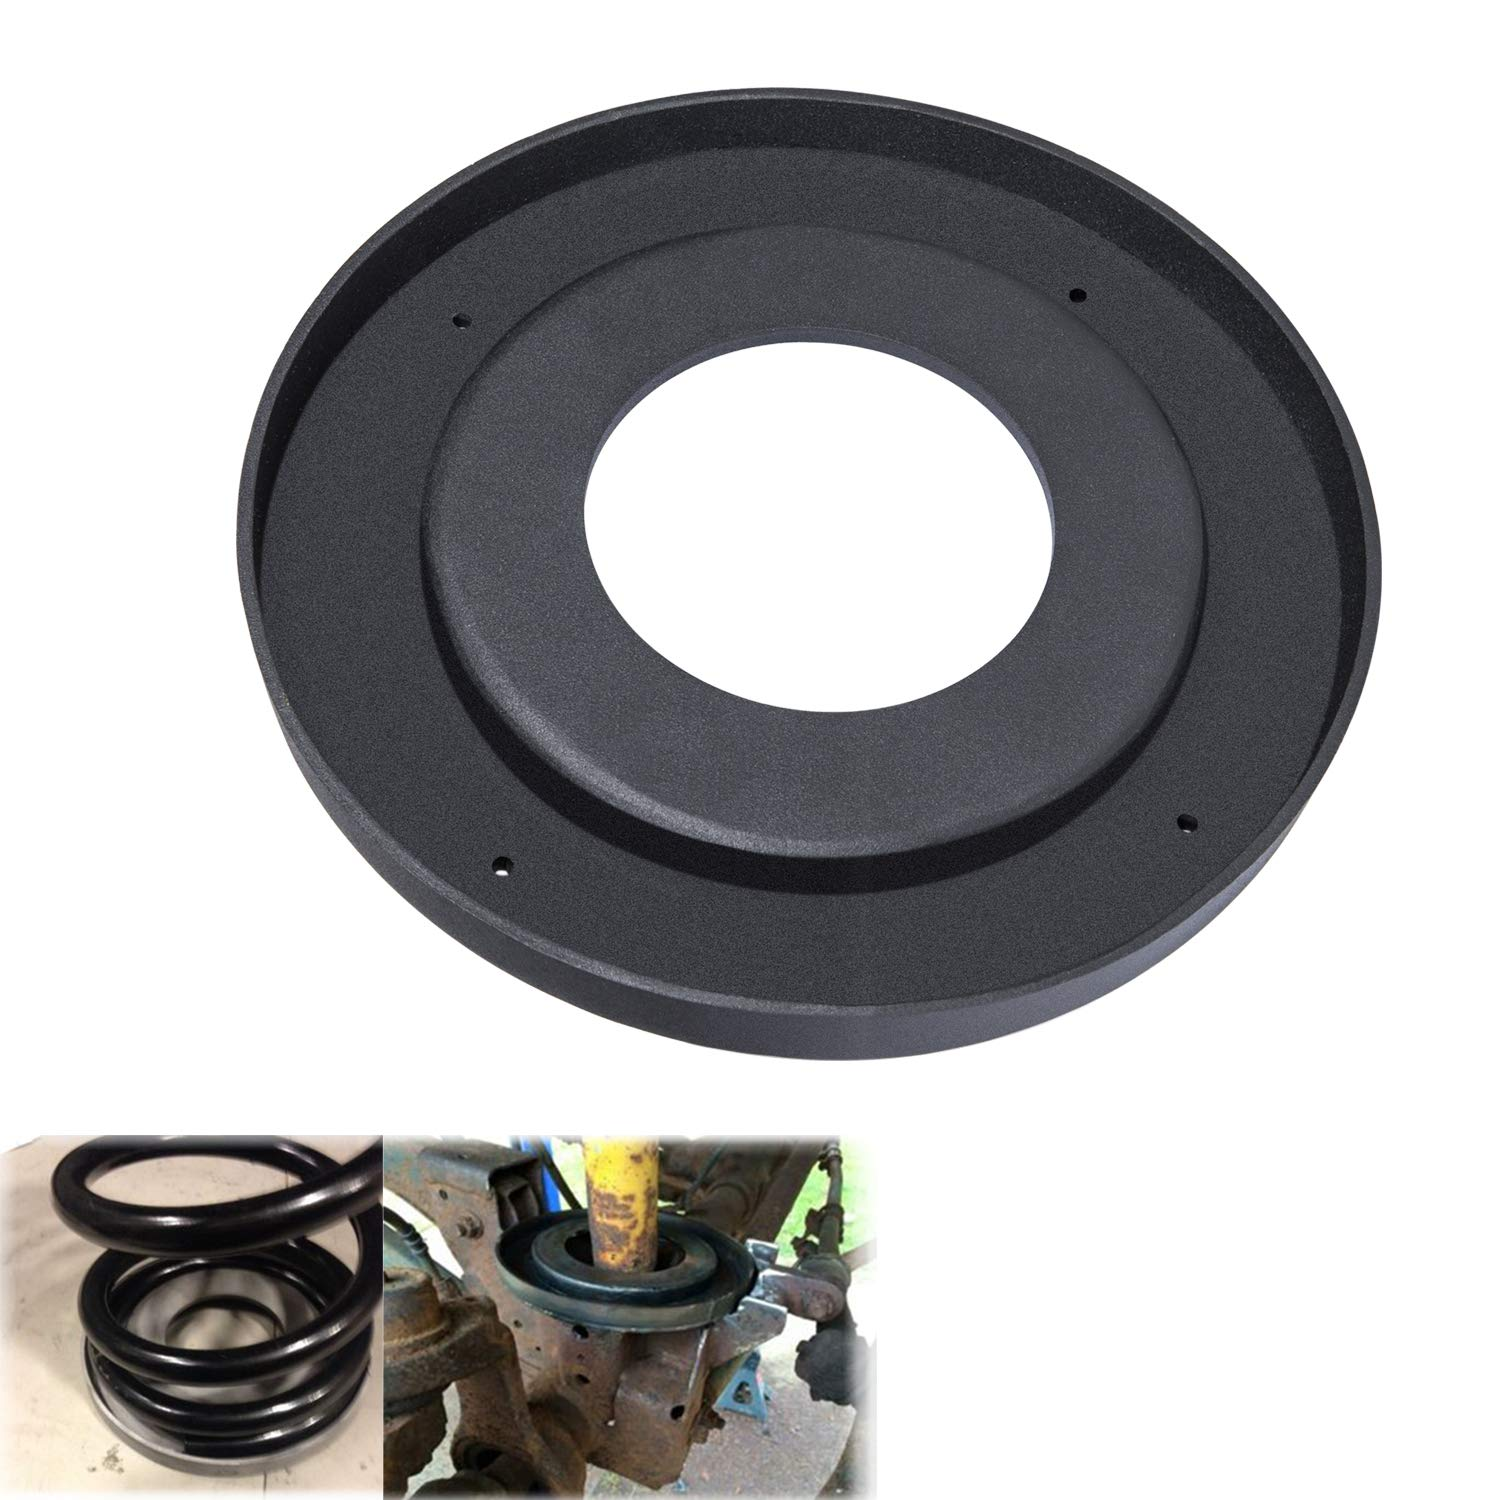 Coil Retainer Coil Spring Perch for Dodge Ram 2500 and 3500 1994-2002 Axle Coil Spring Bucket